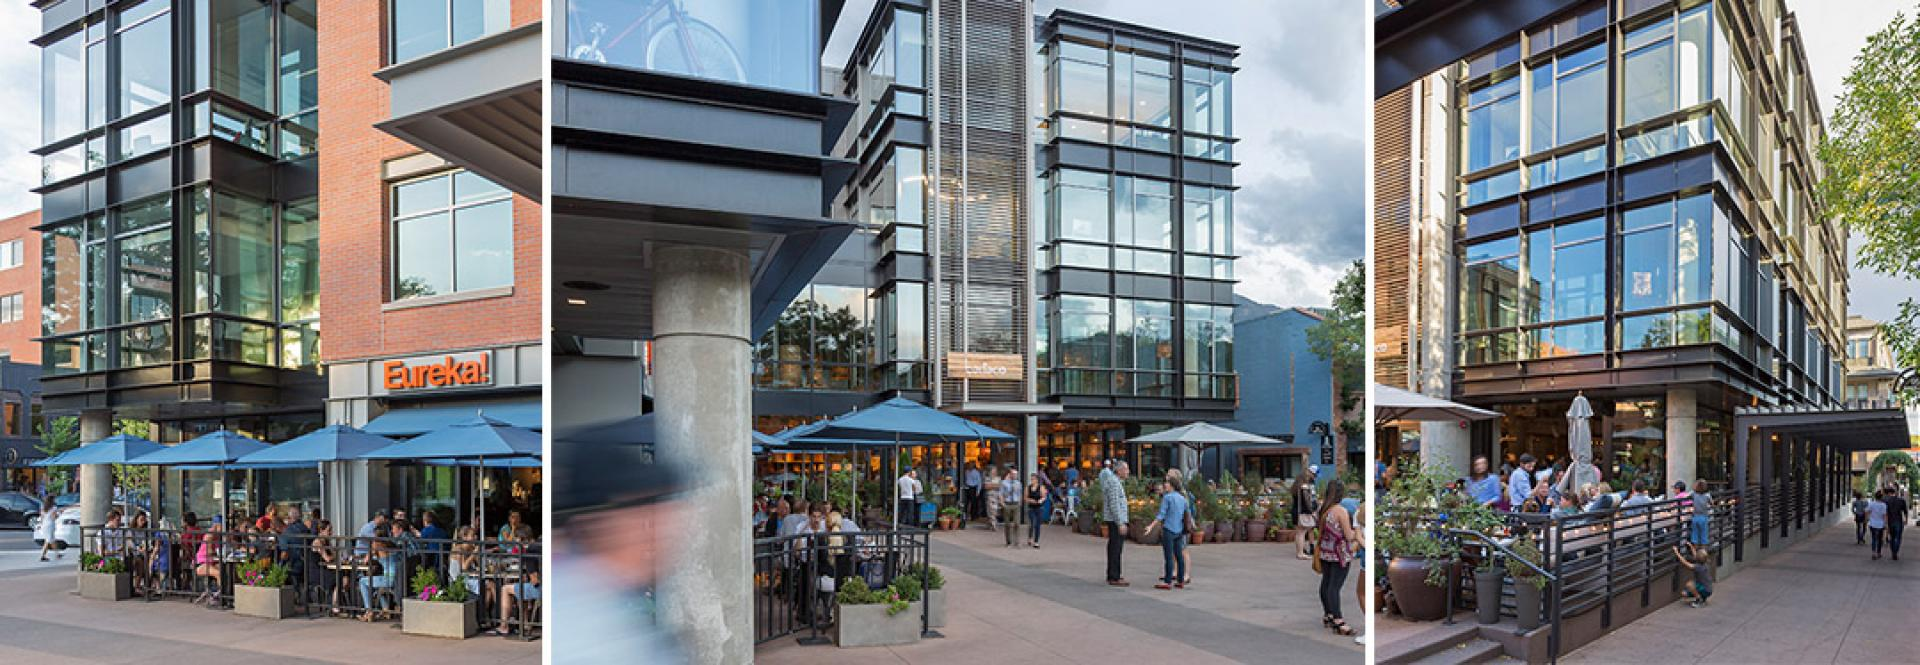 Pearl West Boulder Colorado Building Eureka Office Space - Courtyard